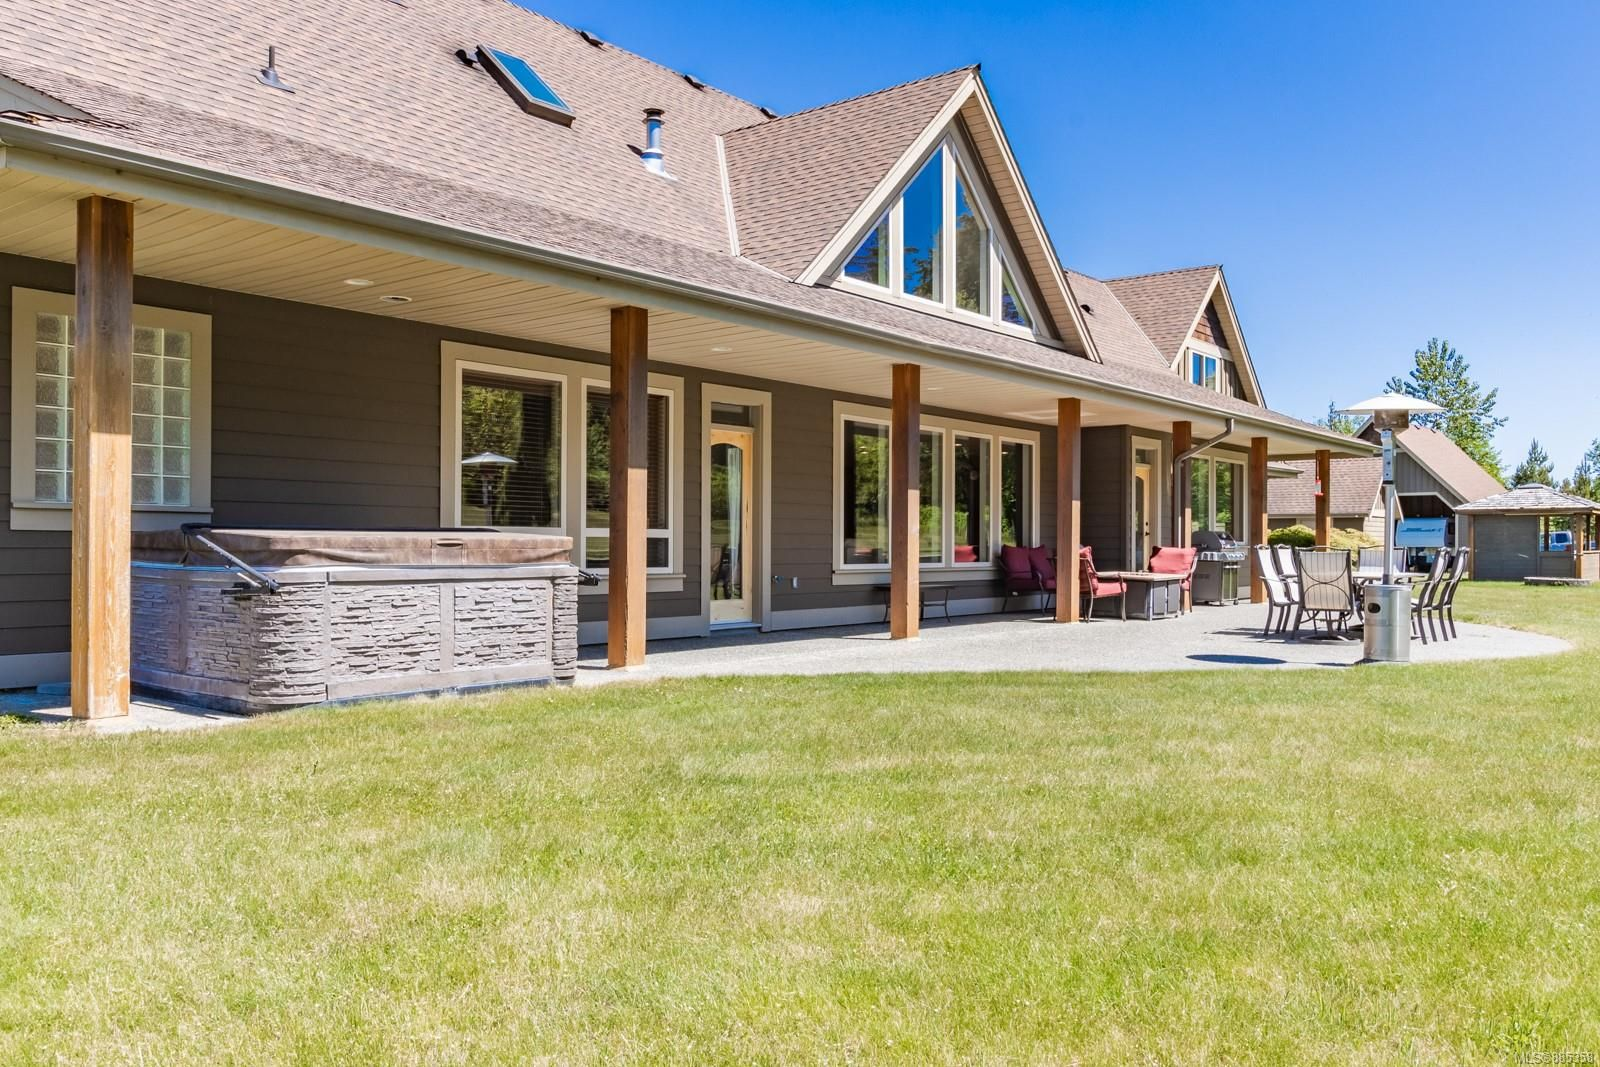 Photo 50: Photos: 2850 Peters Rd in : PQ Qualicum Beach House for sale (Parksville/Qualicum)  : MLS®# 885358